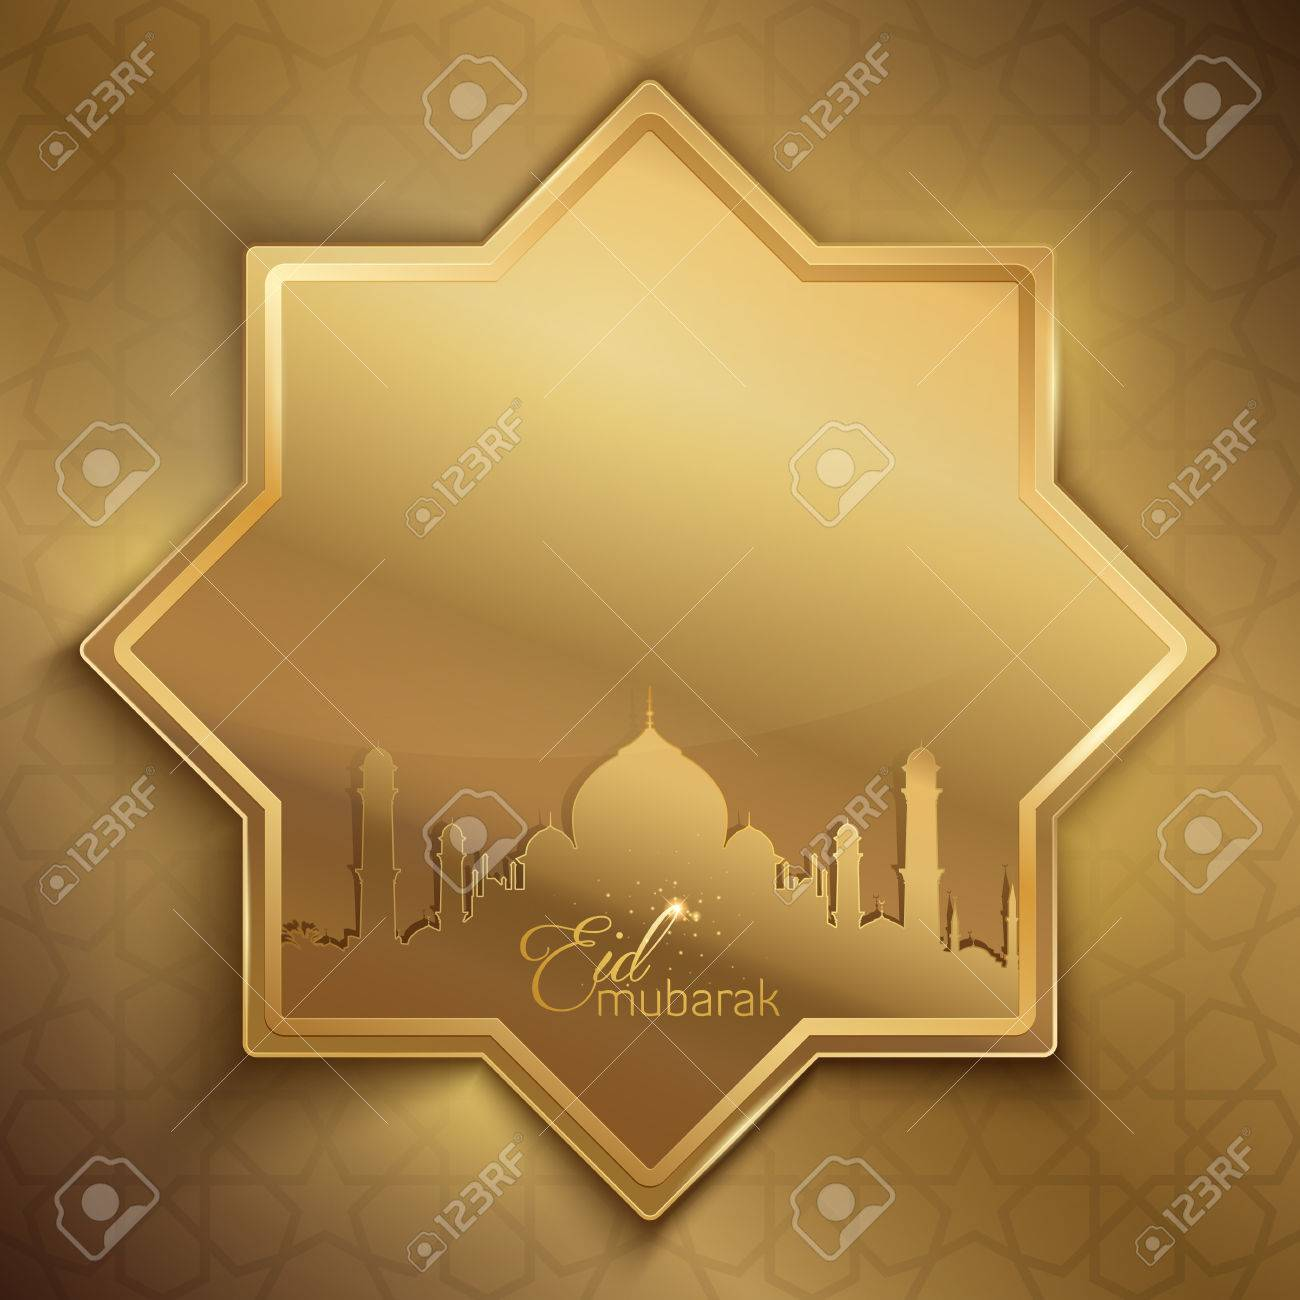 Eid mubarak islamic greeting card background royalty free cliparts eid mubarak islamic greeting card background stock vector 56890832 kristyandbryce Image collections